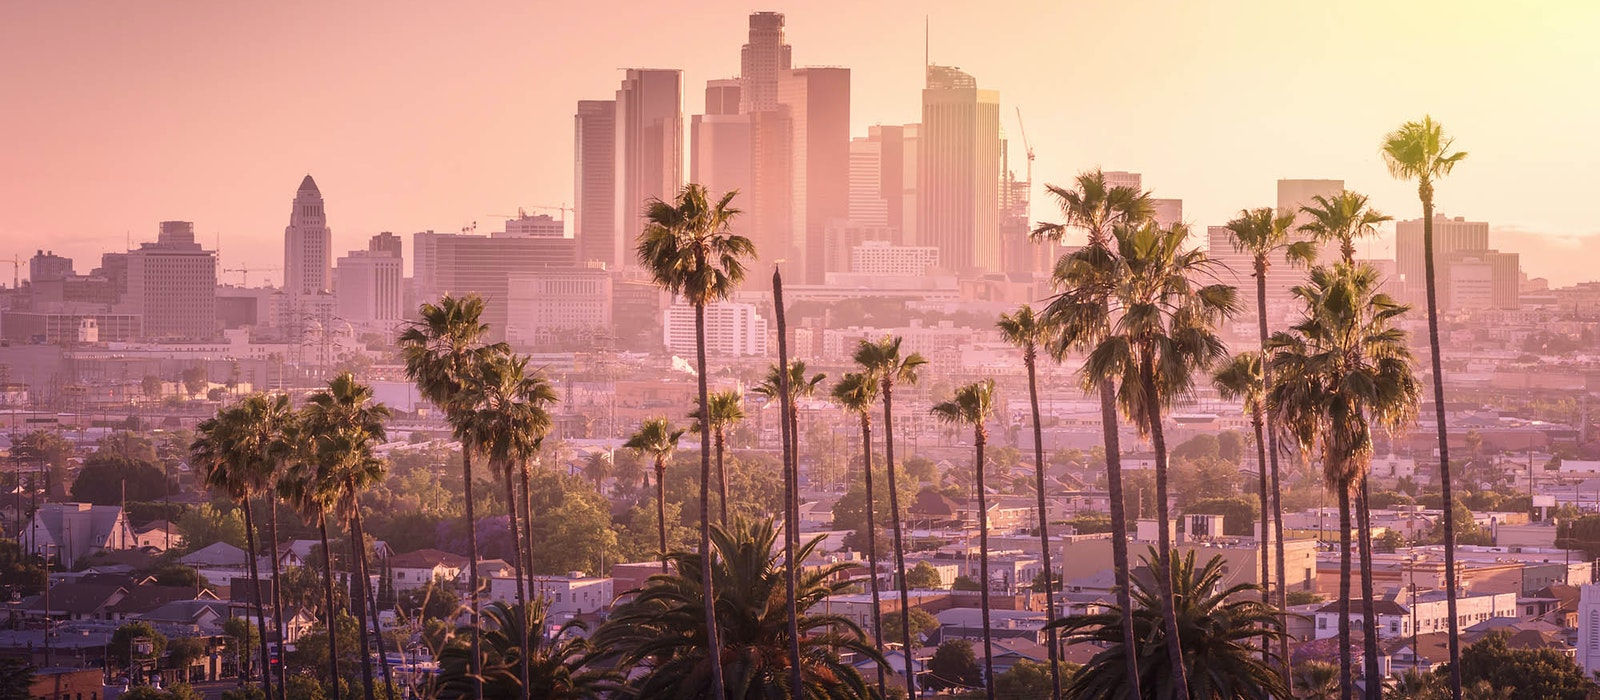 Winter is the time to be in Los Angeles if you're a fan of art.